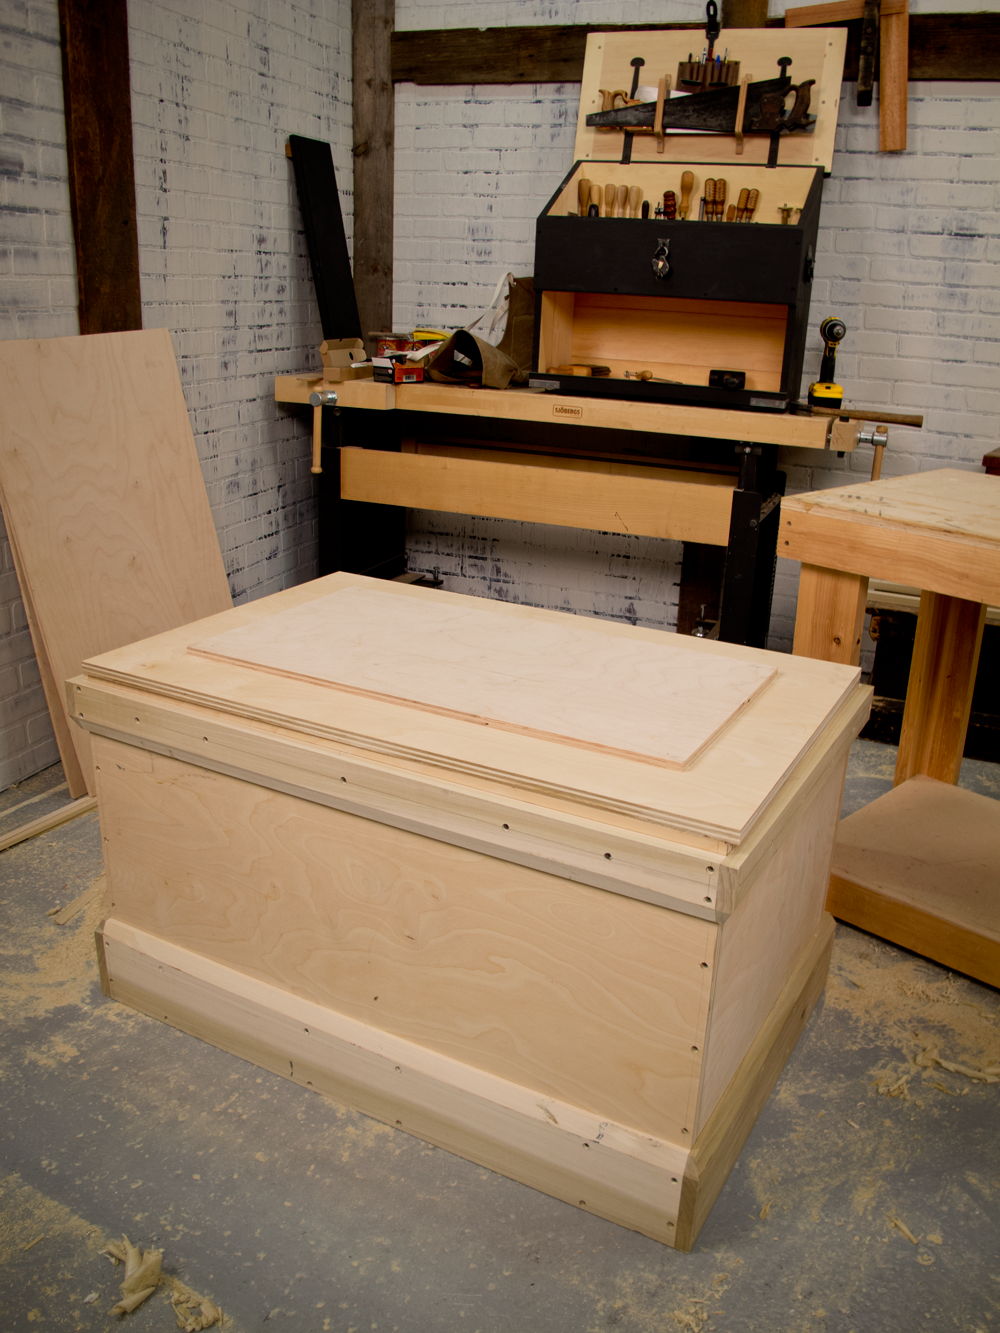 ve now built more than a dozen traditional tool chests entirely by ...